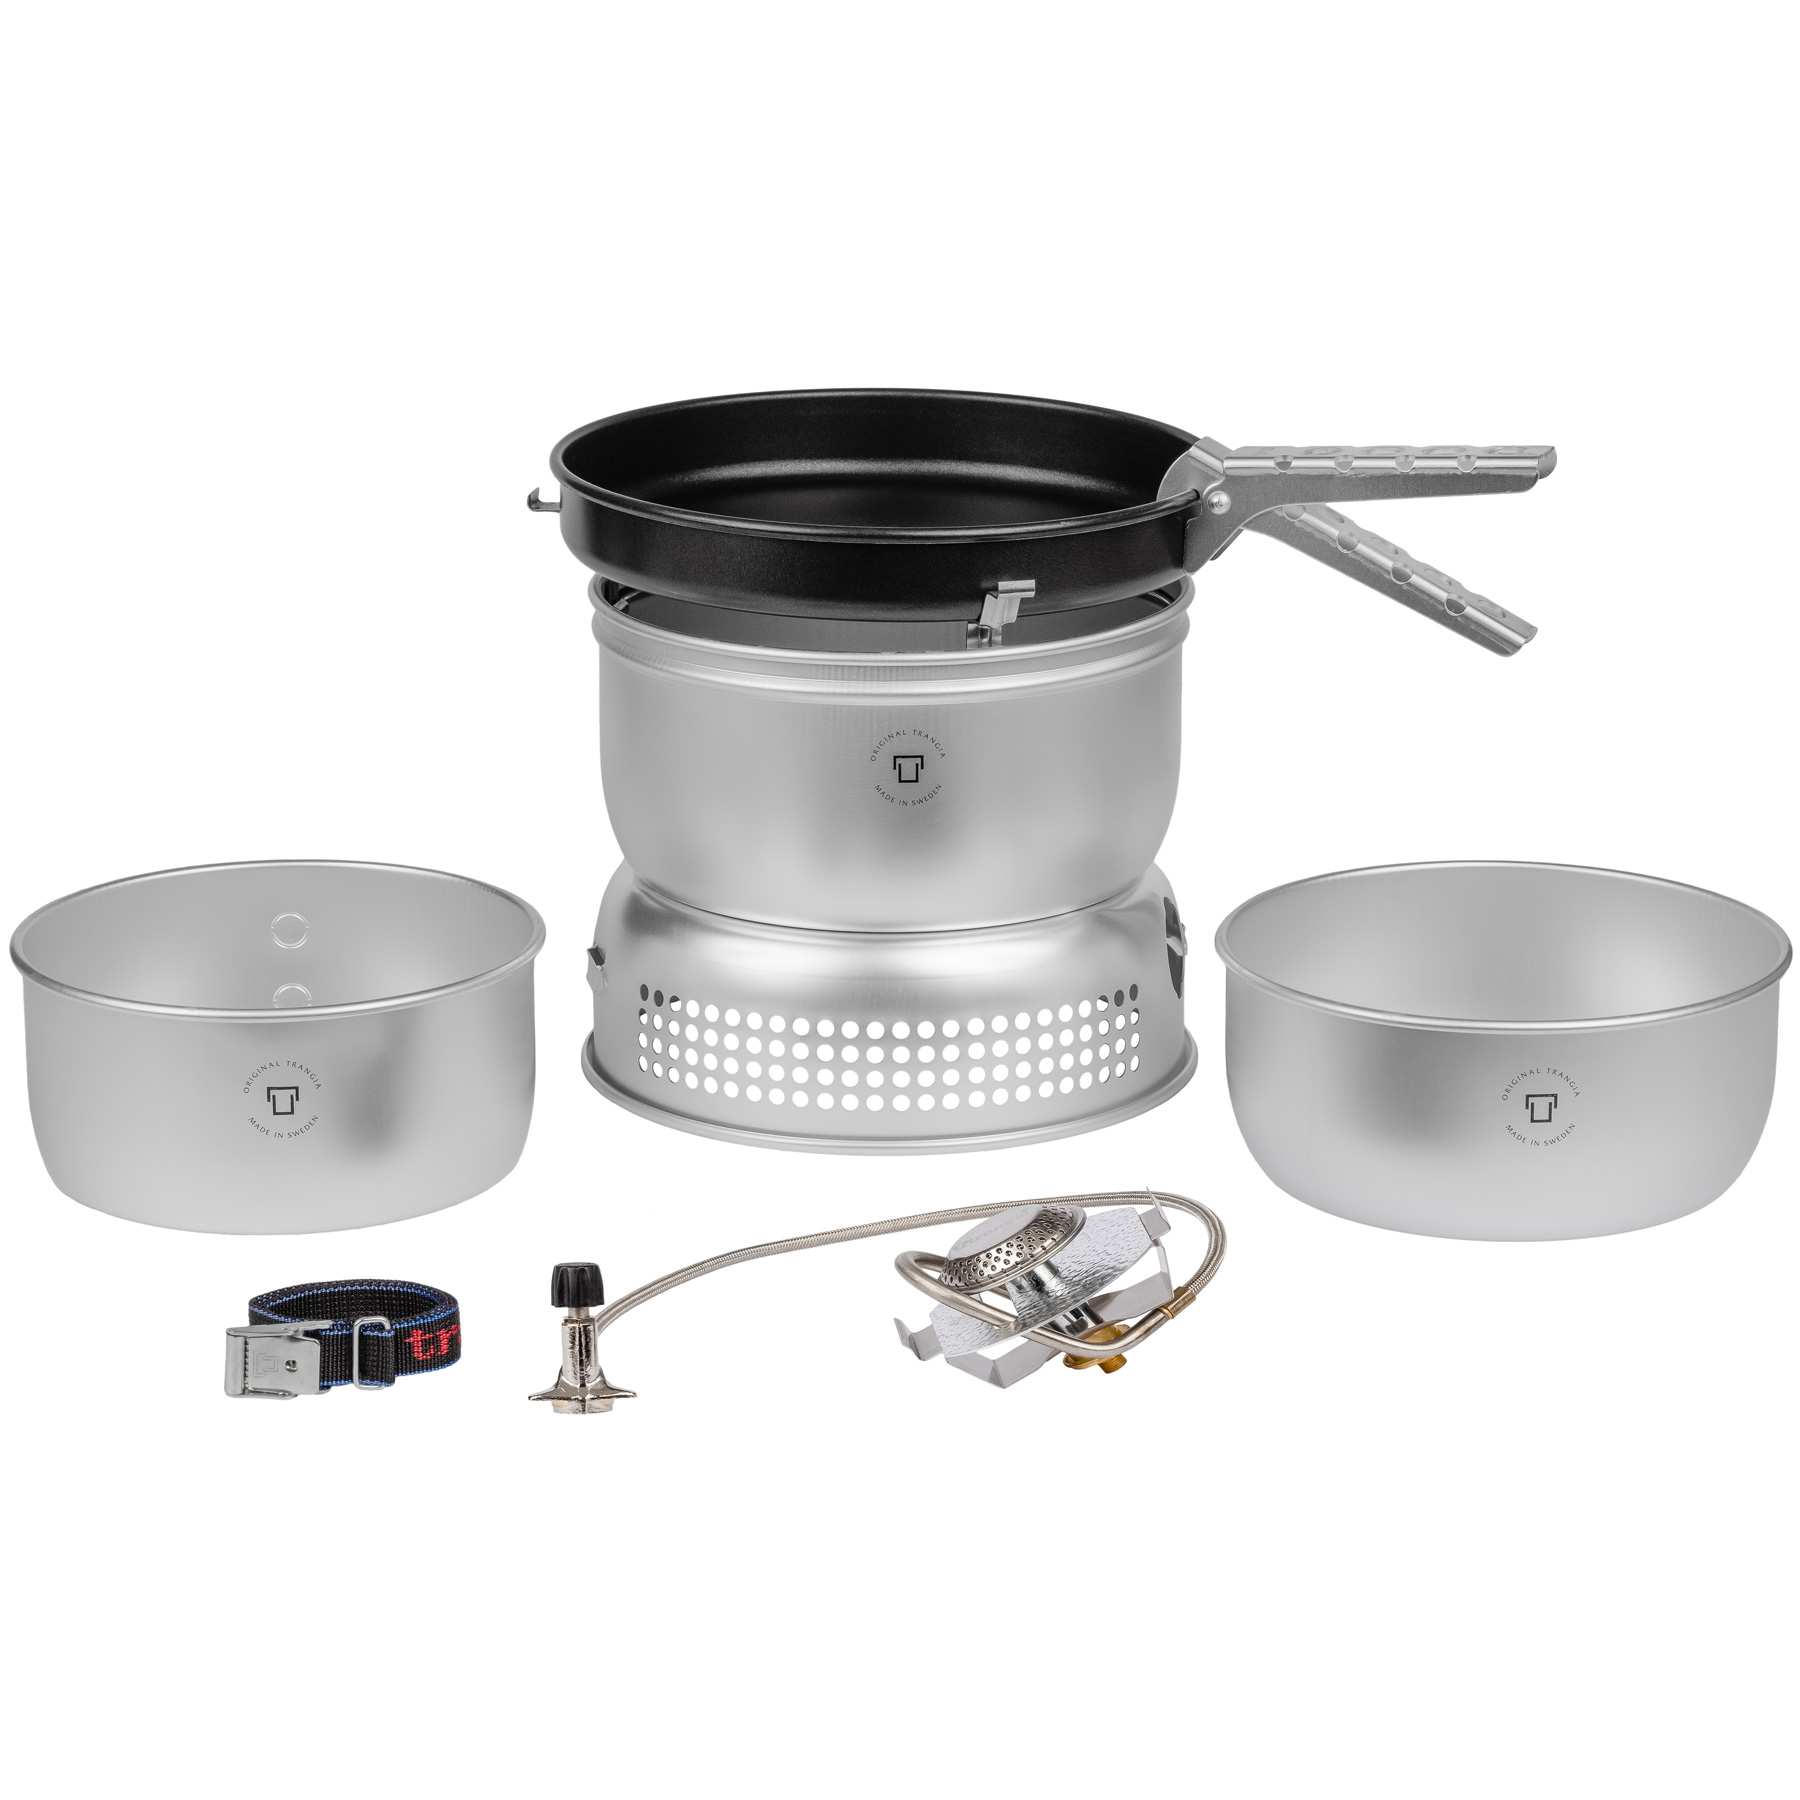 Trangia Storm Cooker 25-3 UL - Stove with Gas Burner, Non-Stick Frypan